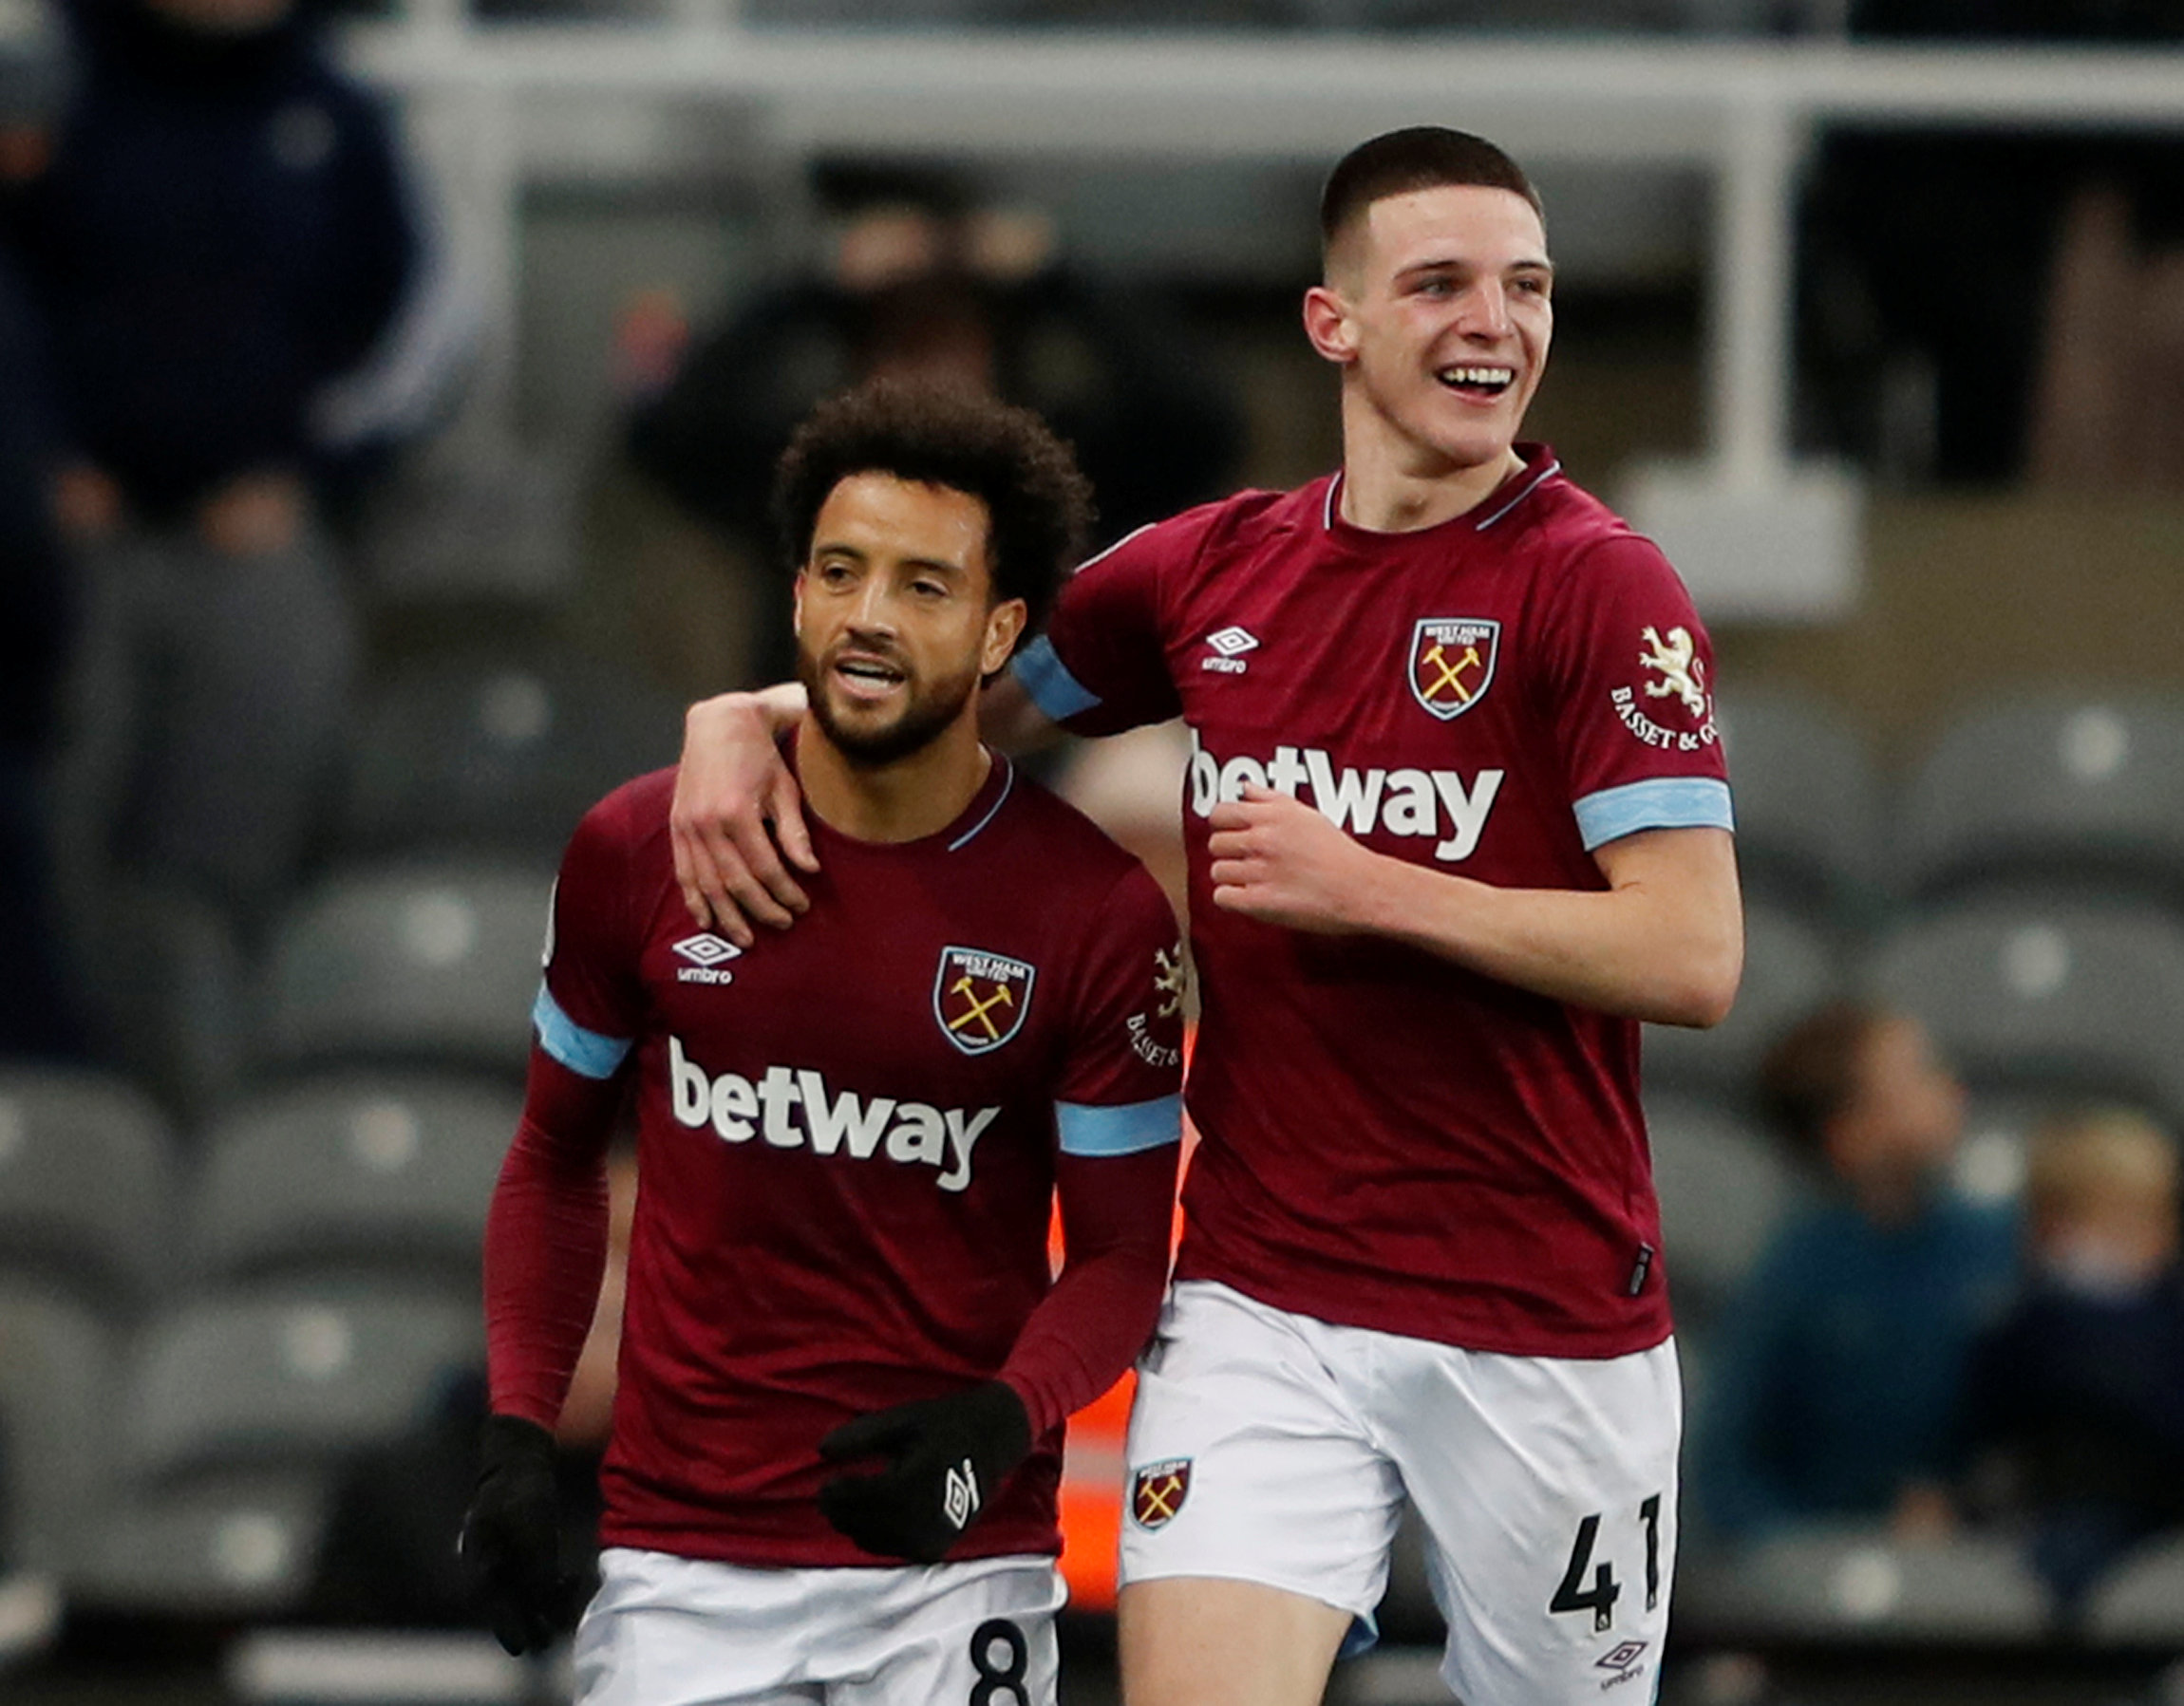 West Ham duo Aaron Cresswell and Fabian Balbuena doubtful for Cardiff